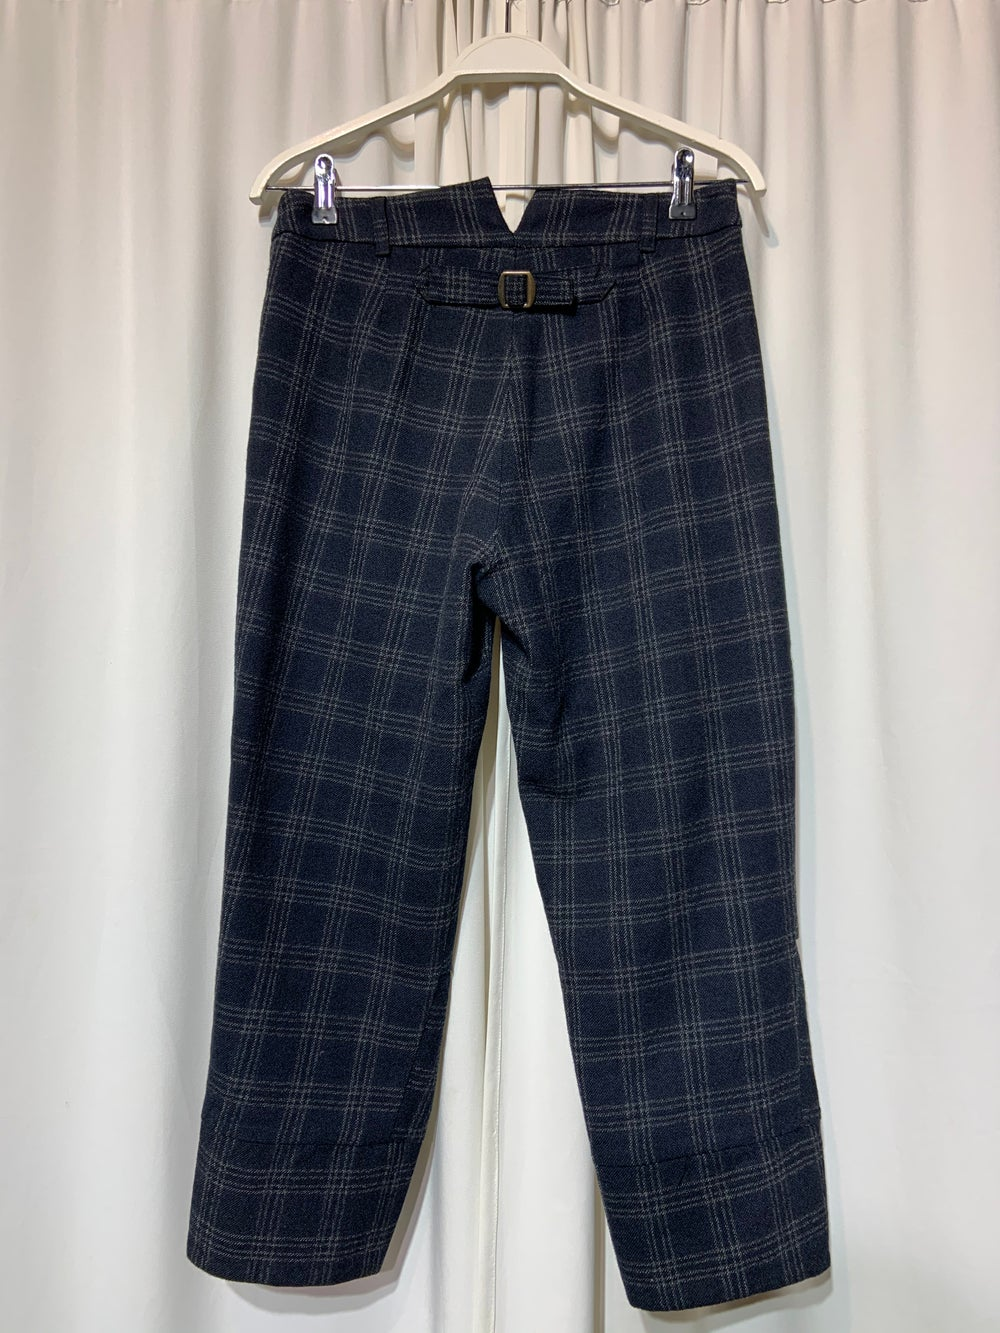 Image of NygardsAnna Checkered Work Trousers